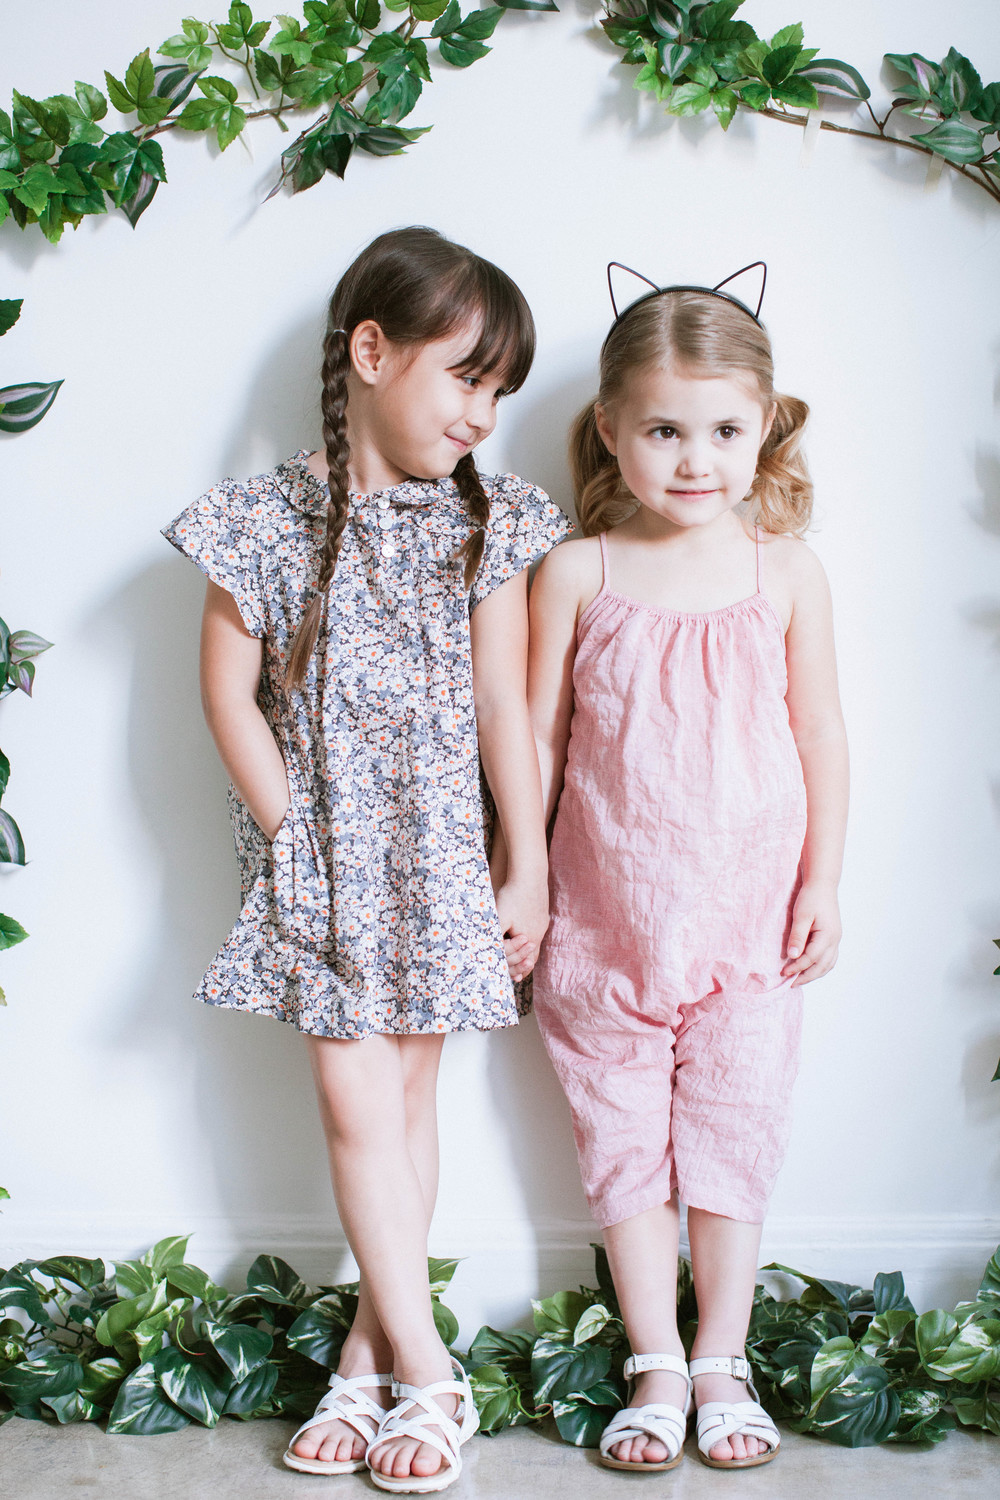 Clementine (left) - Dress: Soor Ploom. Amelia (right) - Romper: Soor Ploom.